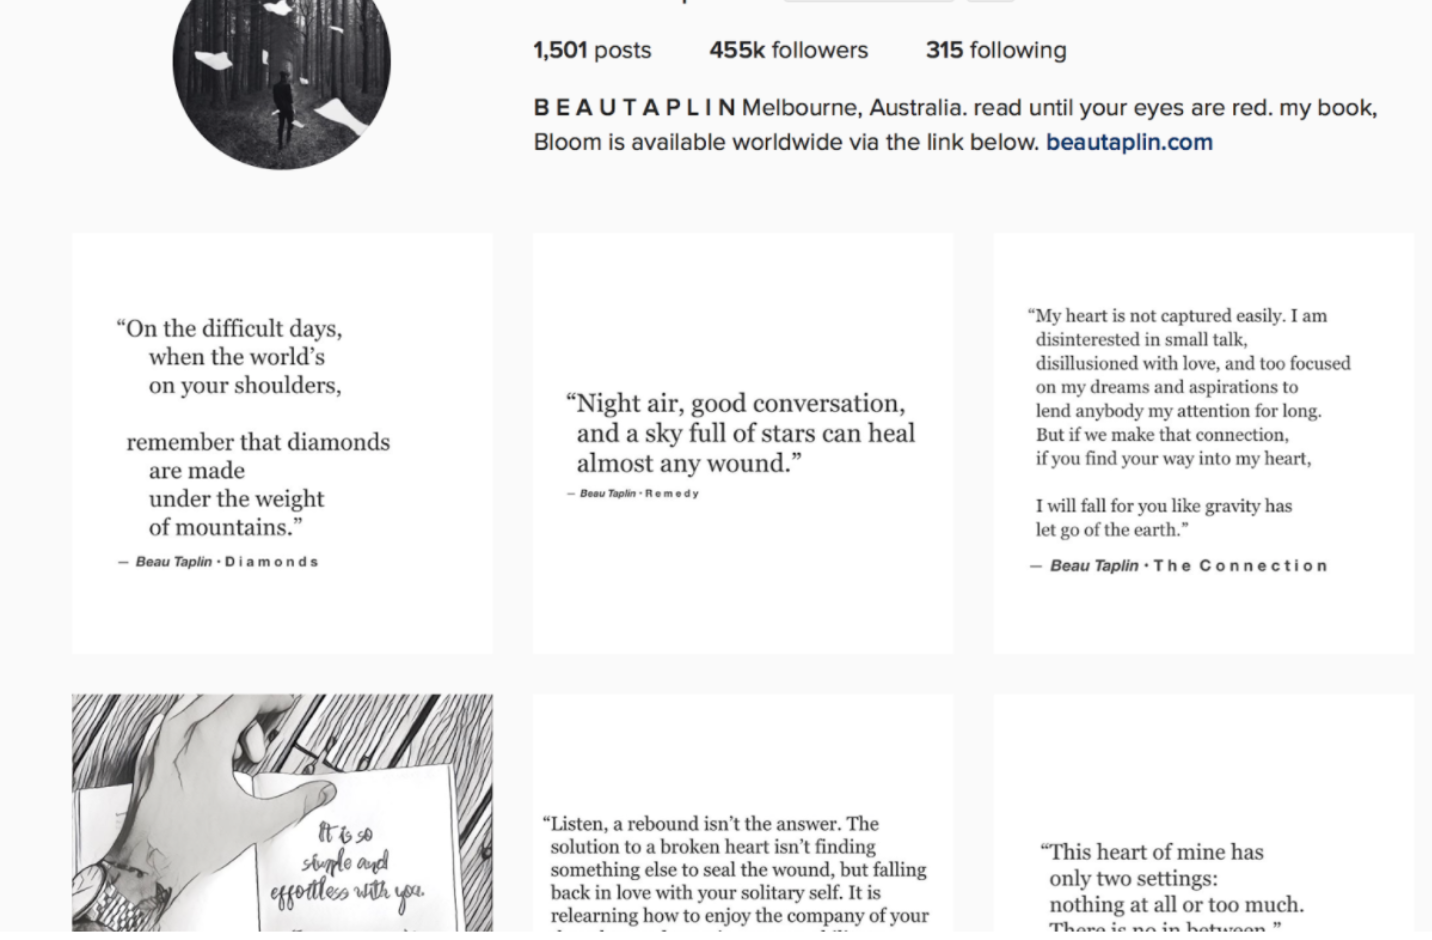 Example of Beau Taplin's Instagram page